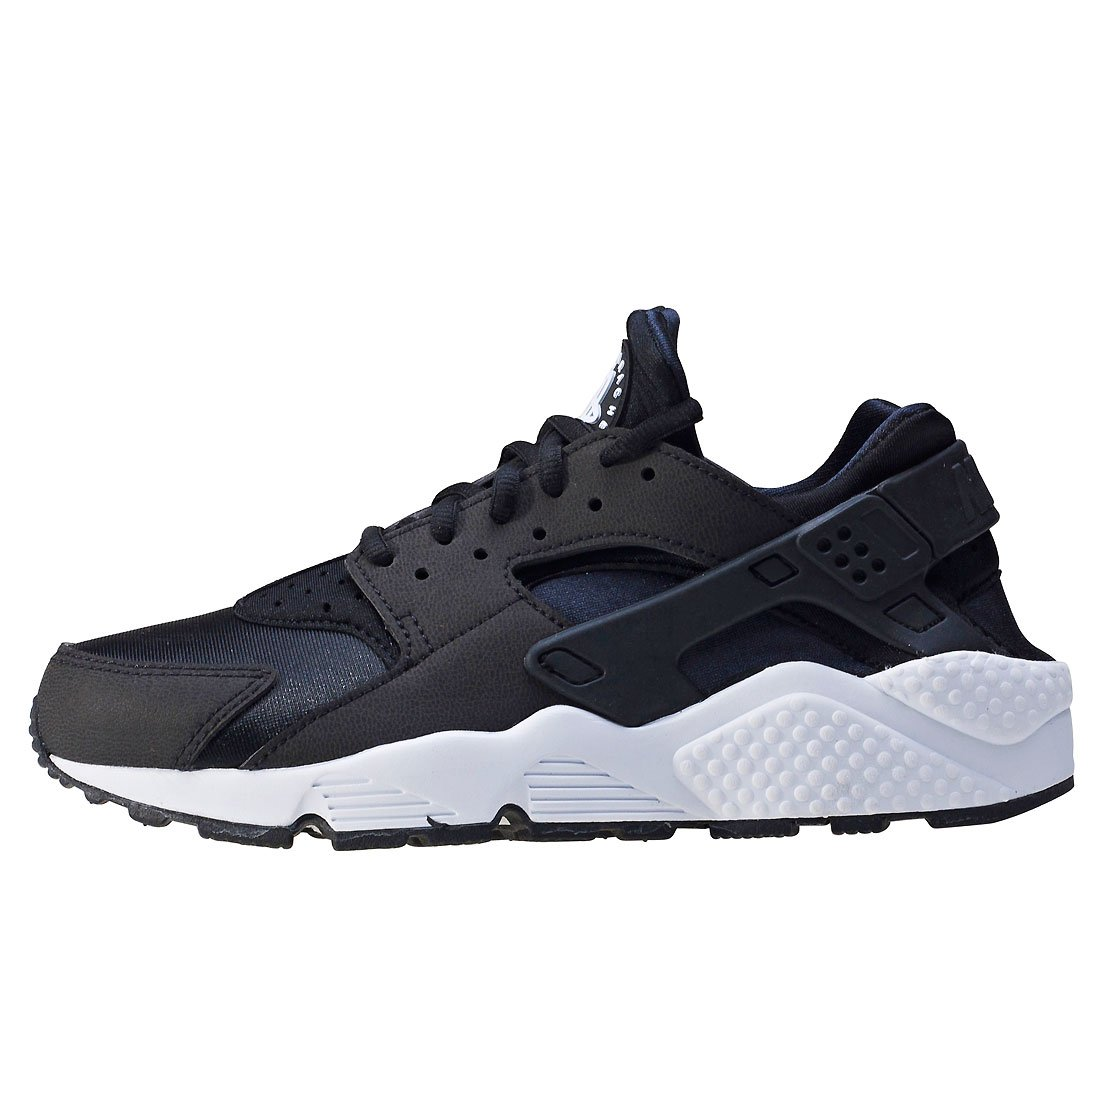 ccab141563db Nike Air Huarache, Women's Training Shoes: Amazon.co.uk: Shoes & Bags